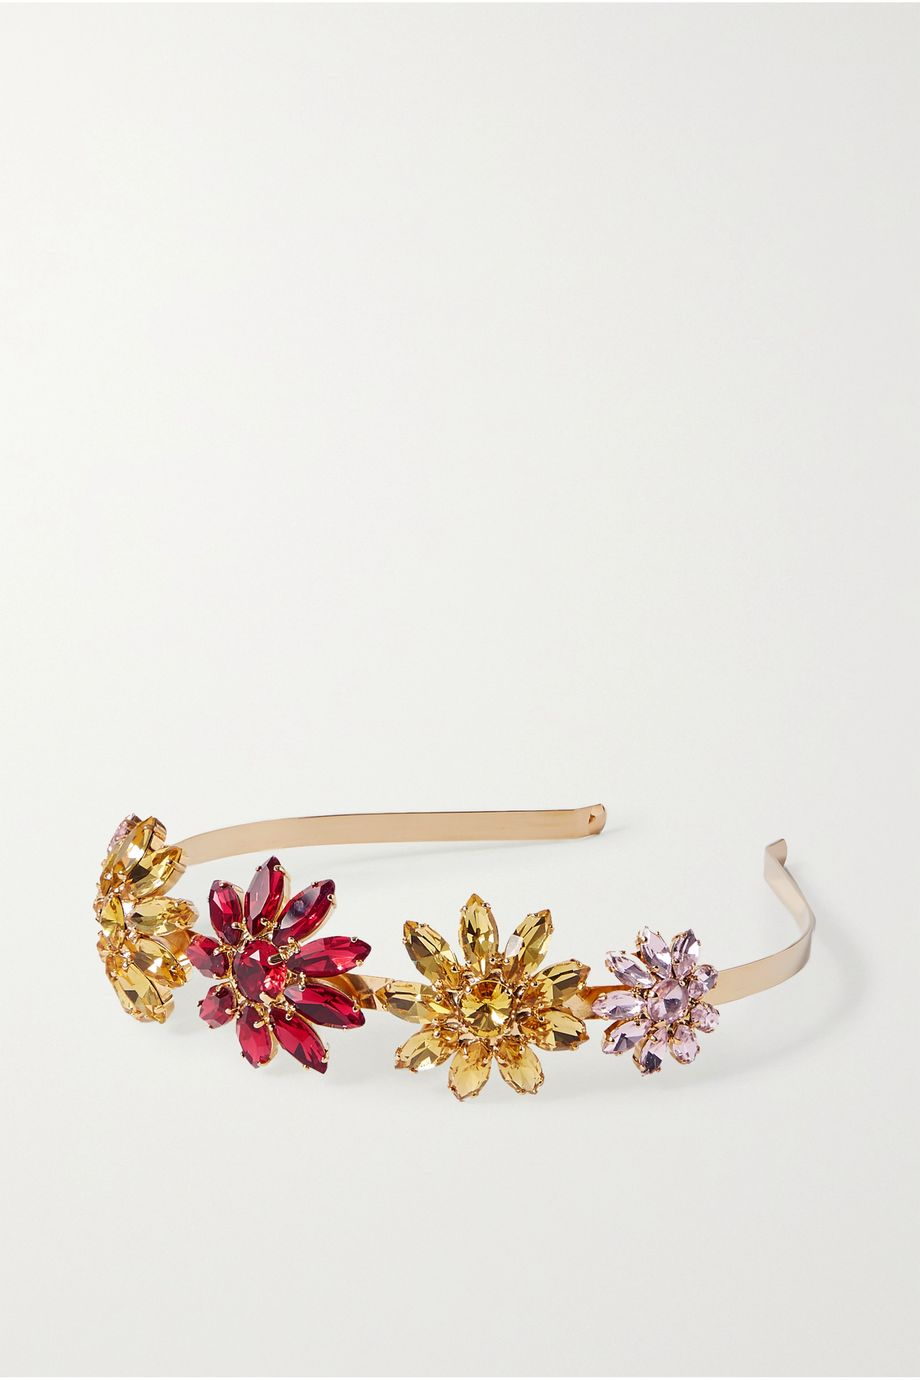 Rosantica Utopia gold-tone crystal headband